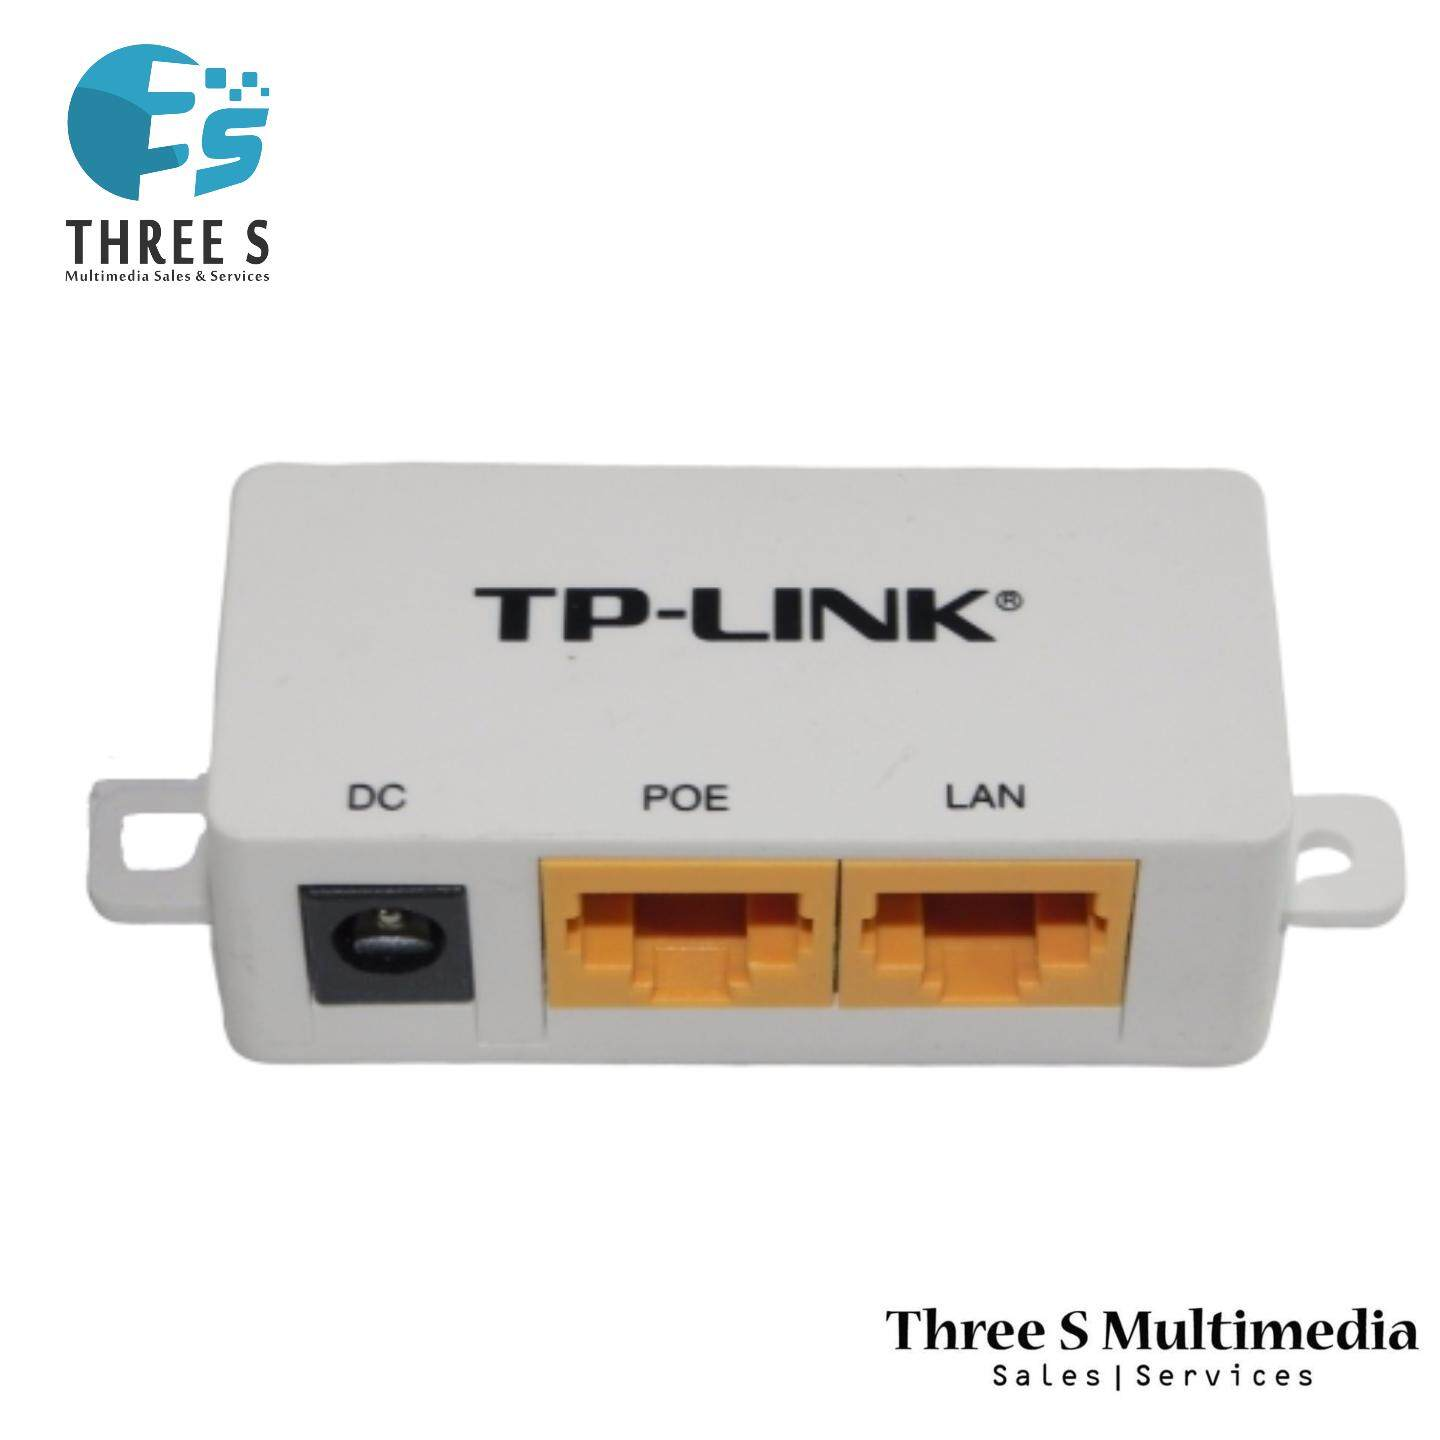 TP-LINK POE ADAPTER